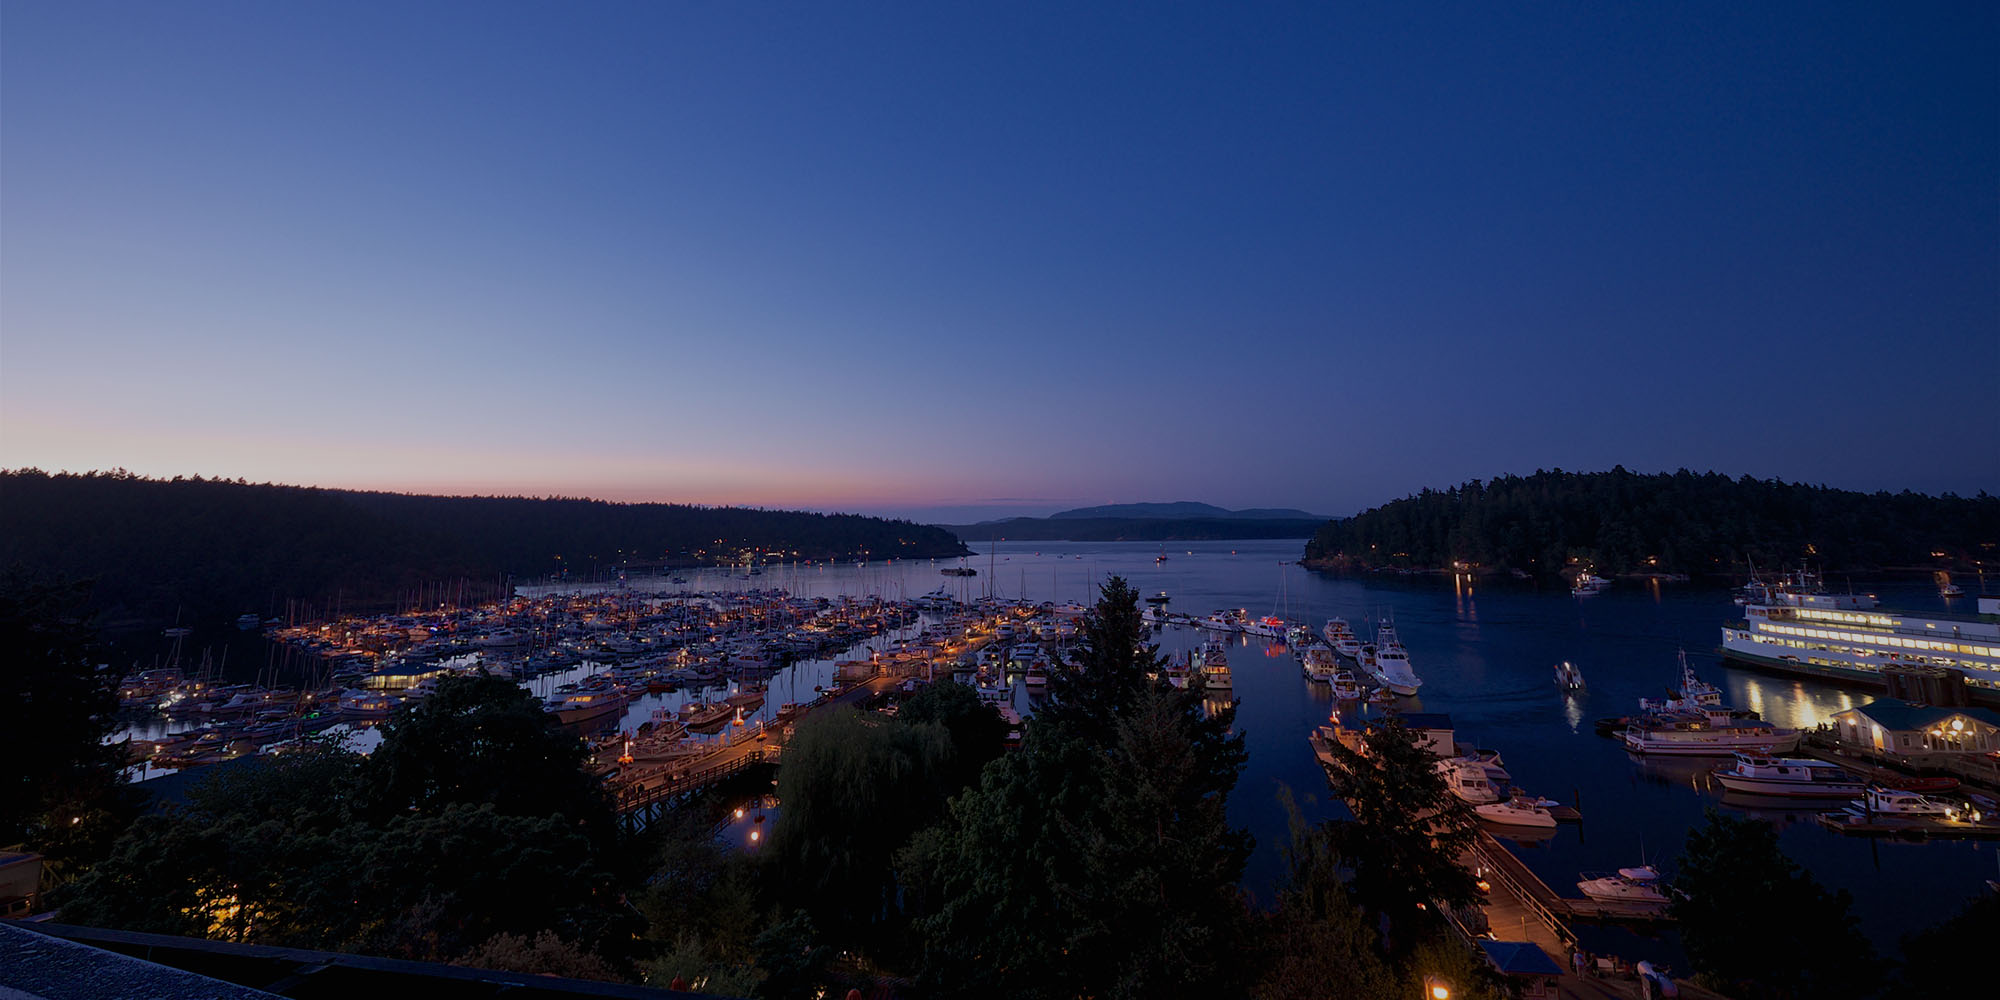 Friday Harbor marina in the evening